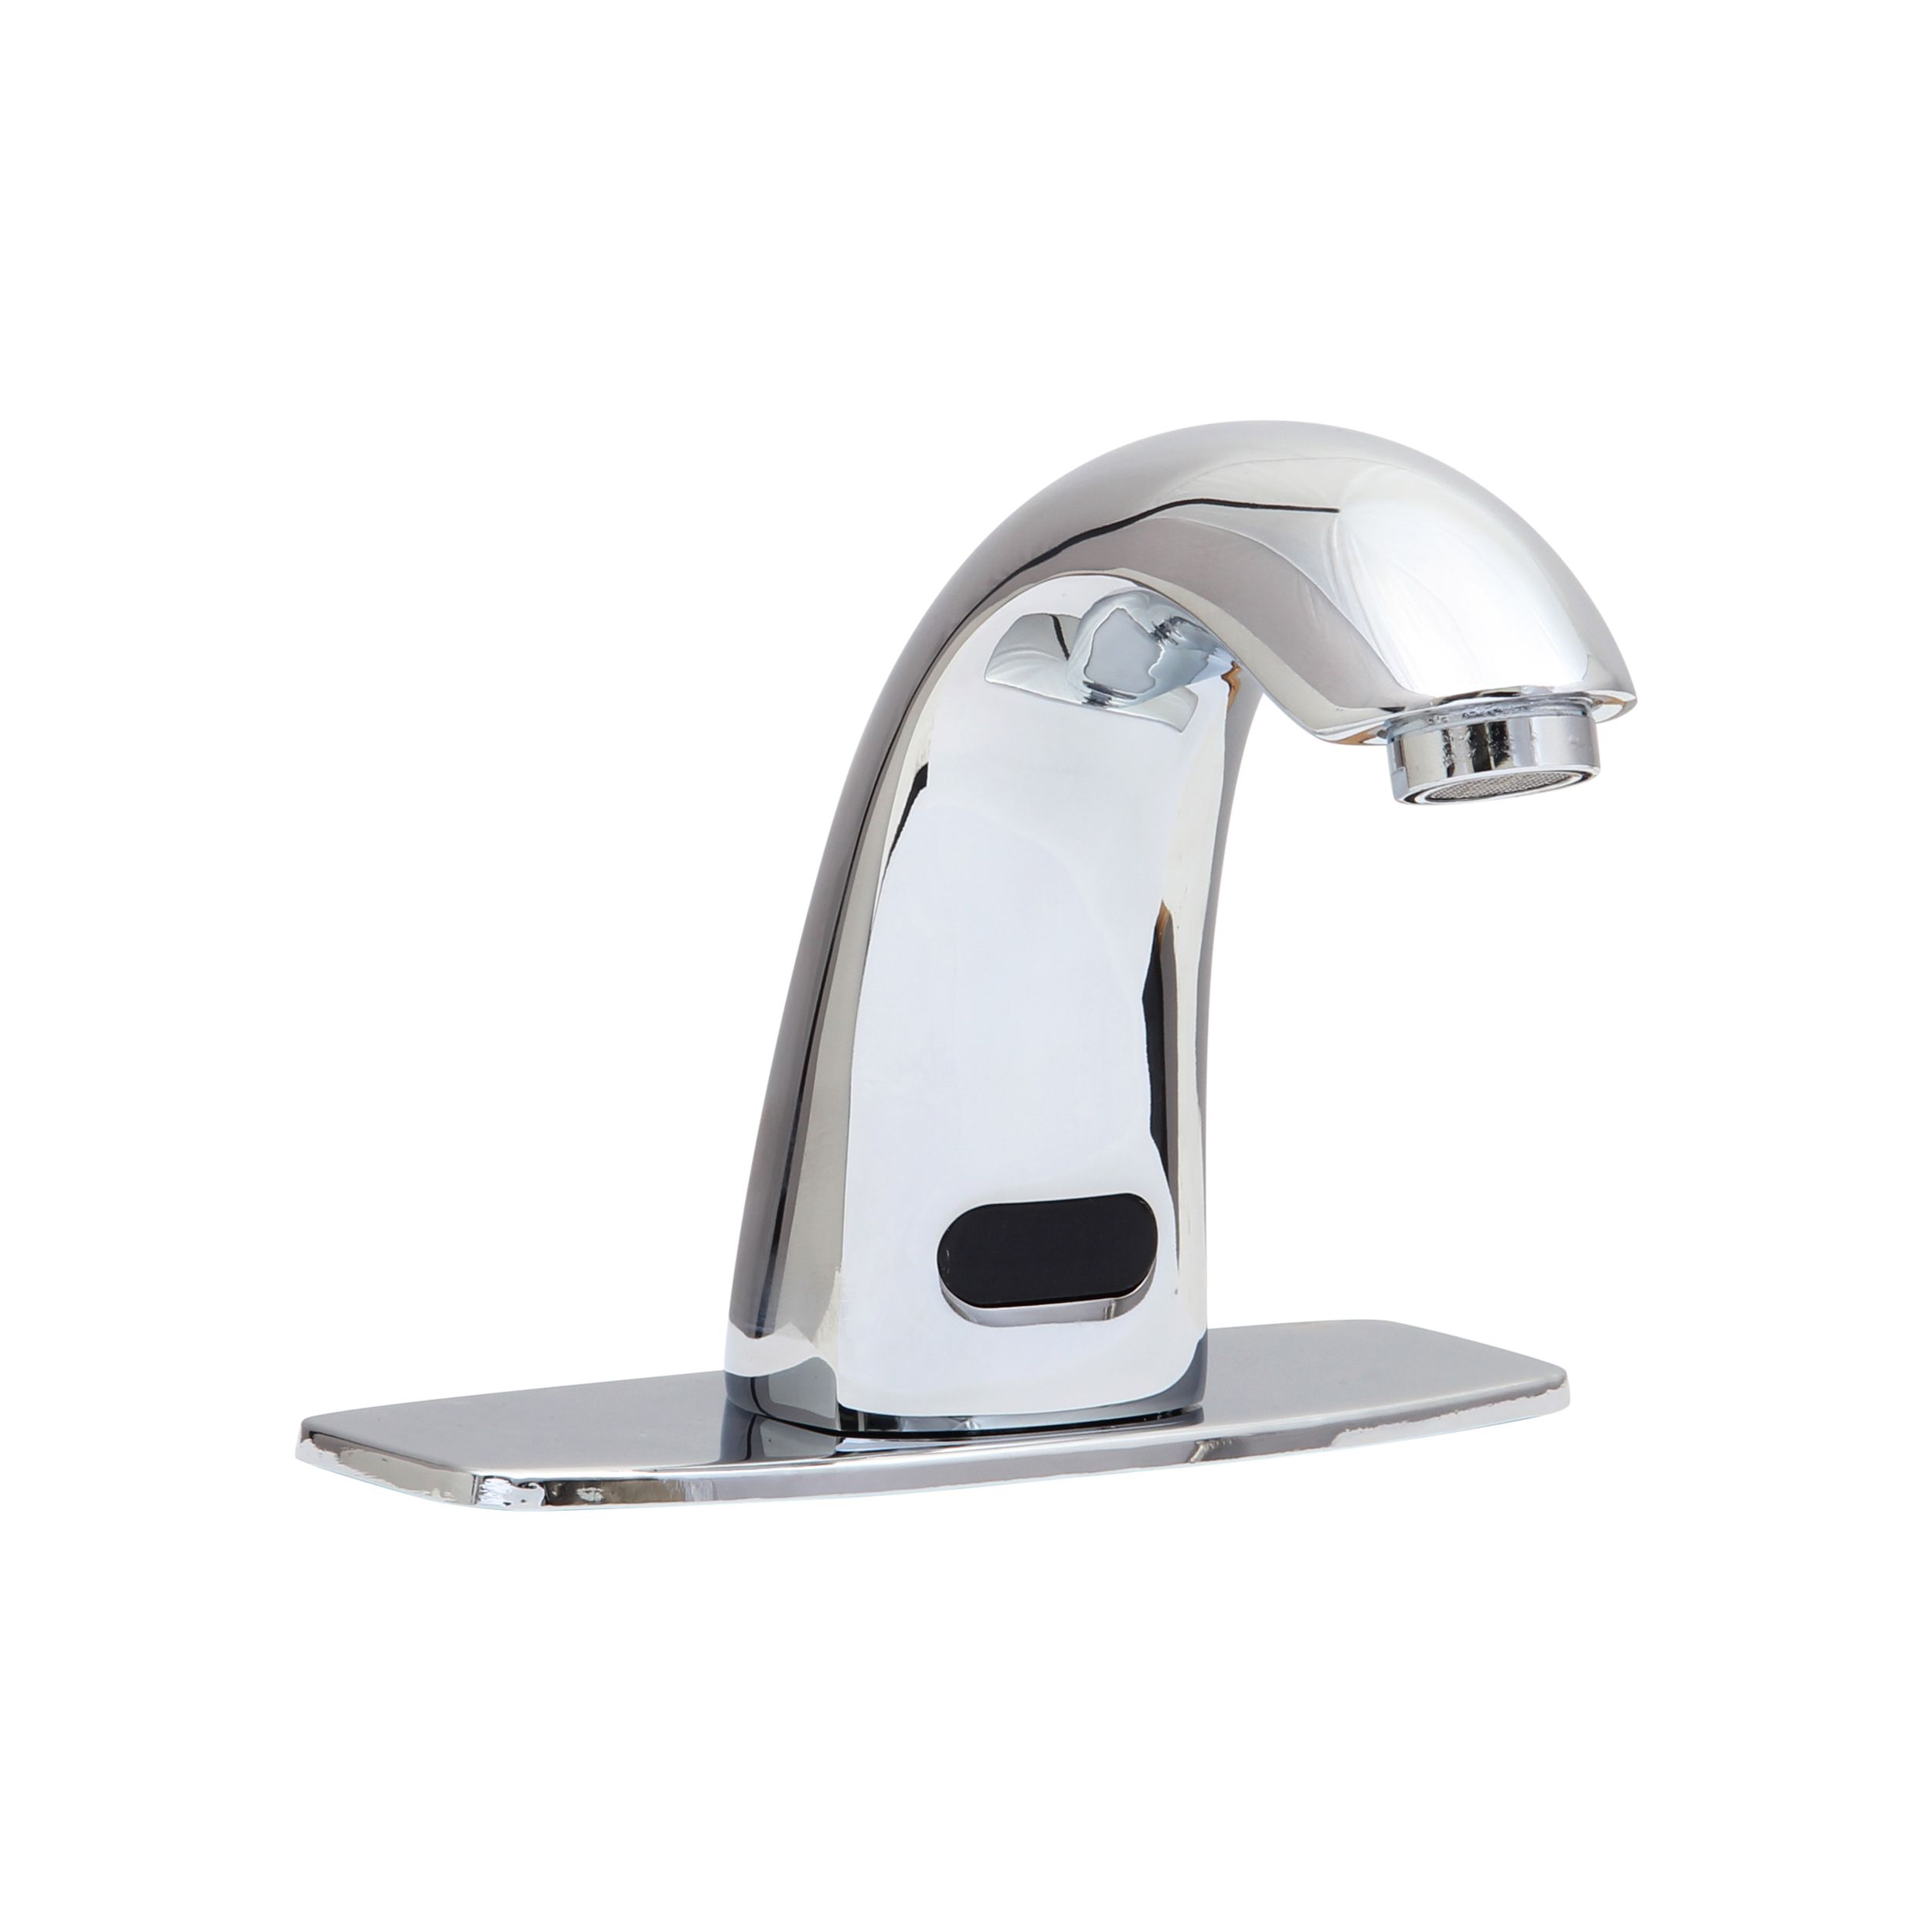 Vessel s c m quality sinks faucets and accessories - Bathroom Design 2017 2018